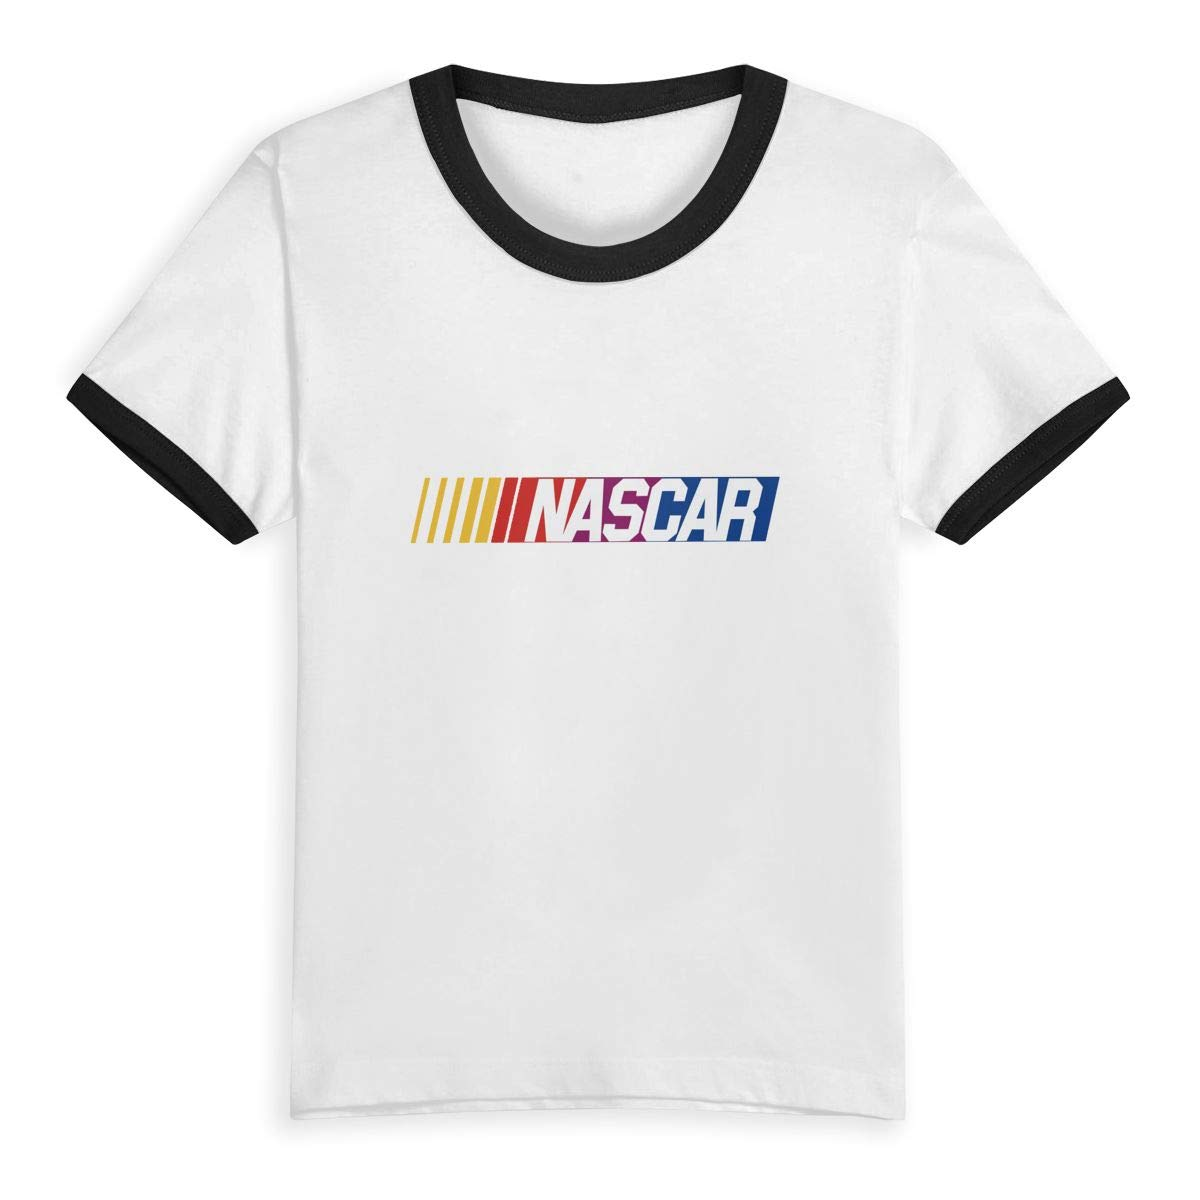 EVAGIBBONS Nascar Child Leisure Cute Fashion Life T Shirt